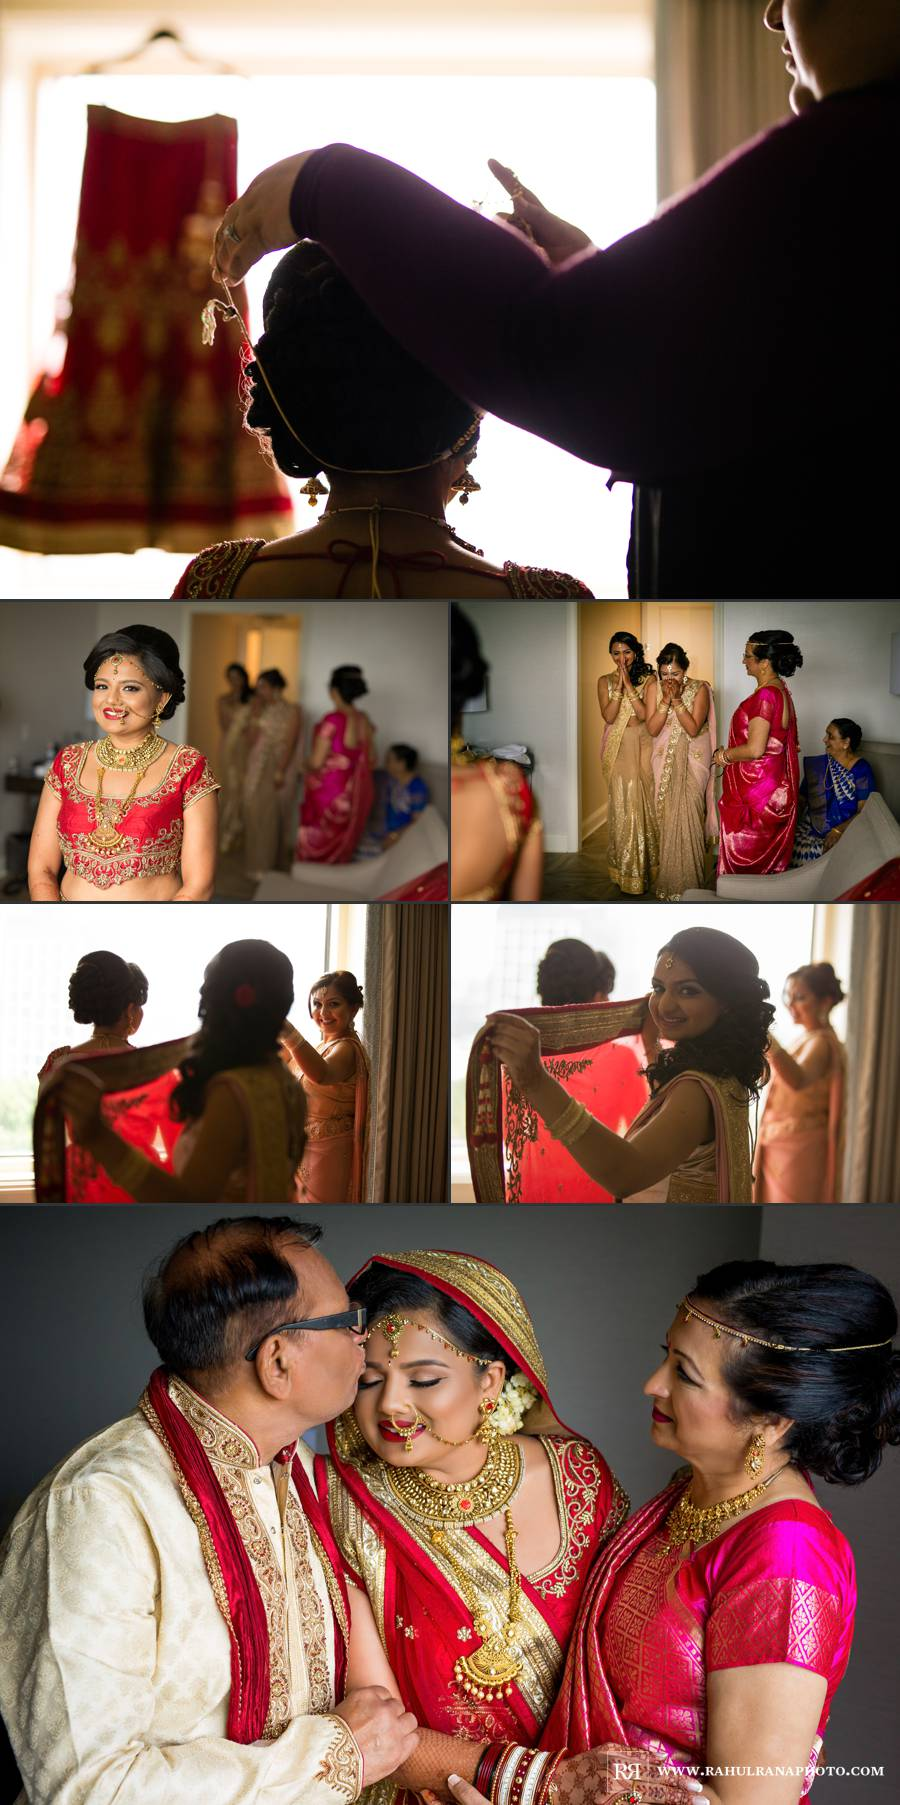 Ritz Carlton Tysons Corner - Virginia Indian Bride Sisters Getting Ready - Rahul Rana Photography